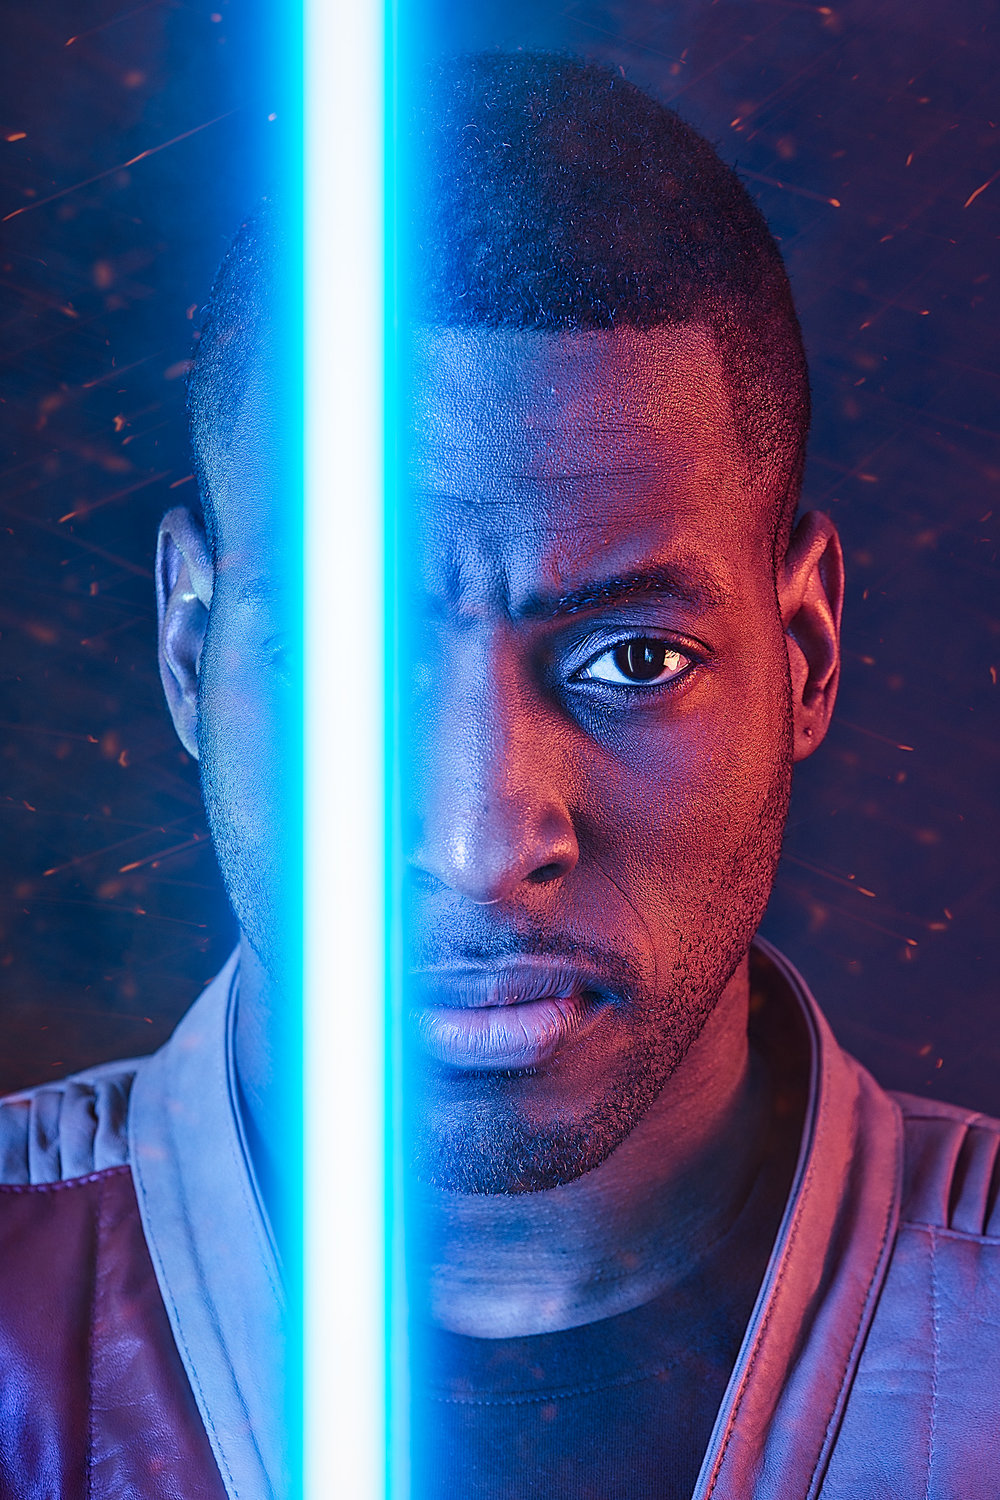 Star Wars - Finn Headshot with LIghtsaber